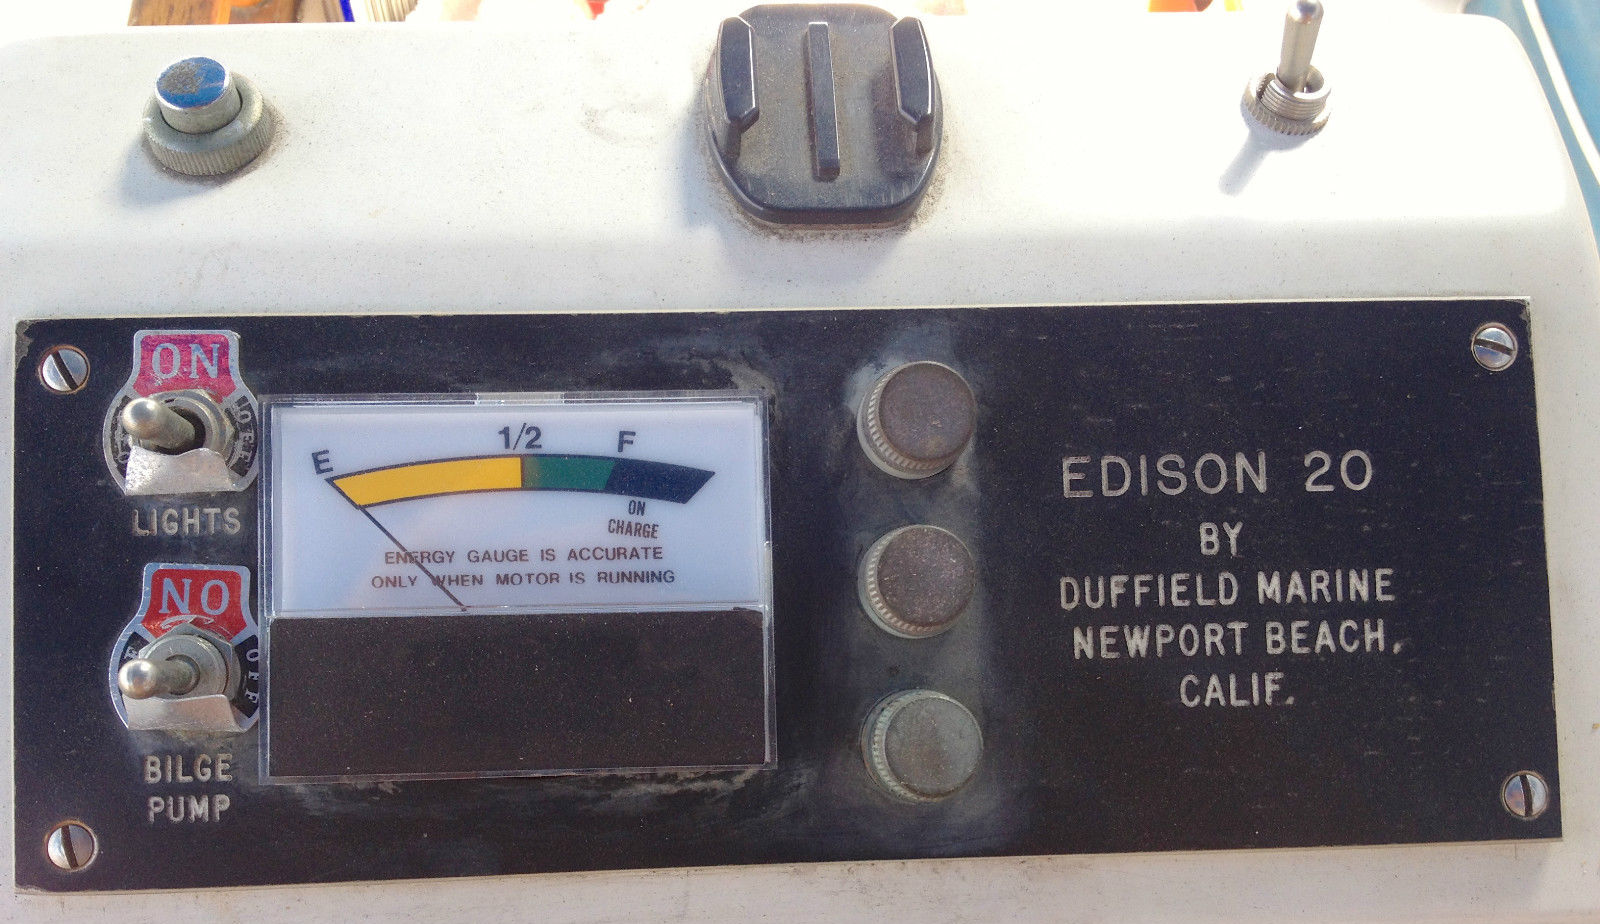 Swell Duffy Electric Boat Wiring Diagram Basic Electronics Wiring Diagram Wiring 101 Capemaxxcnl